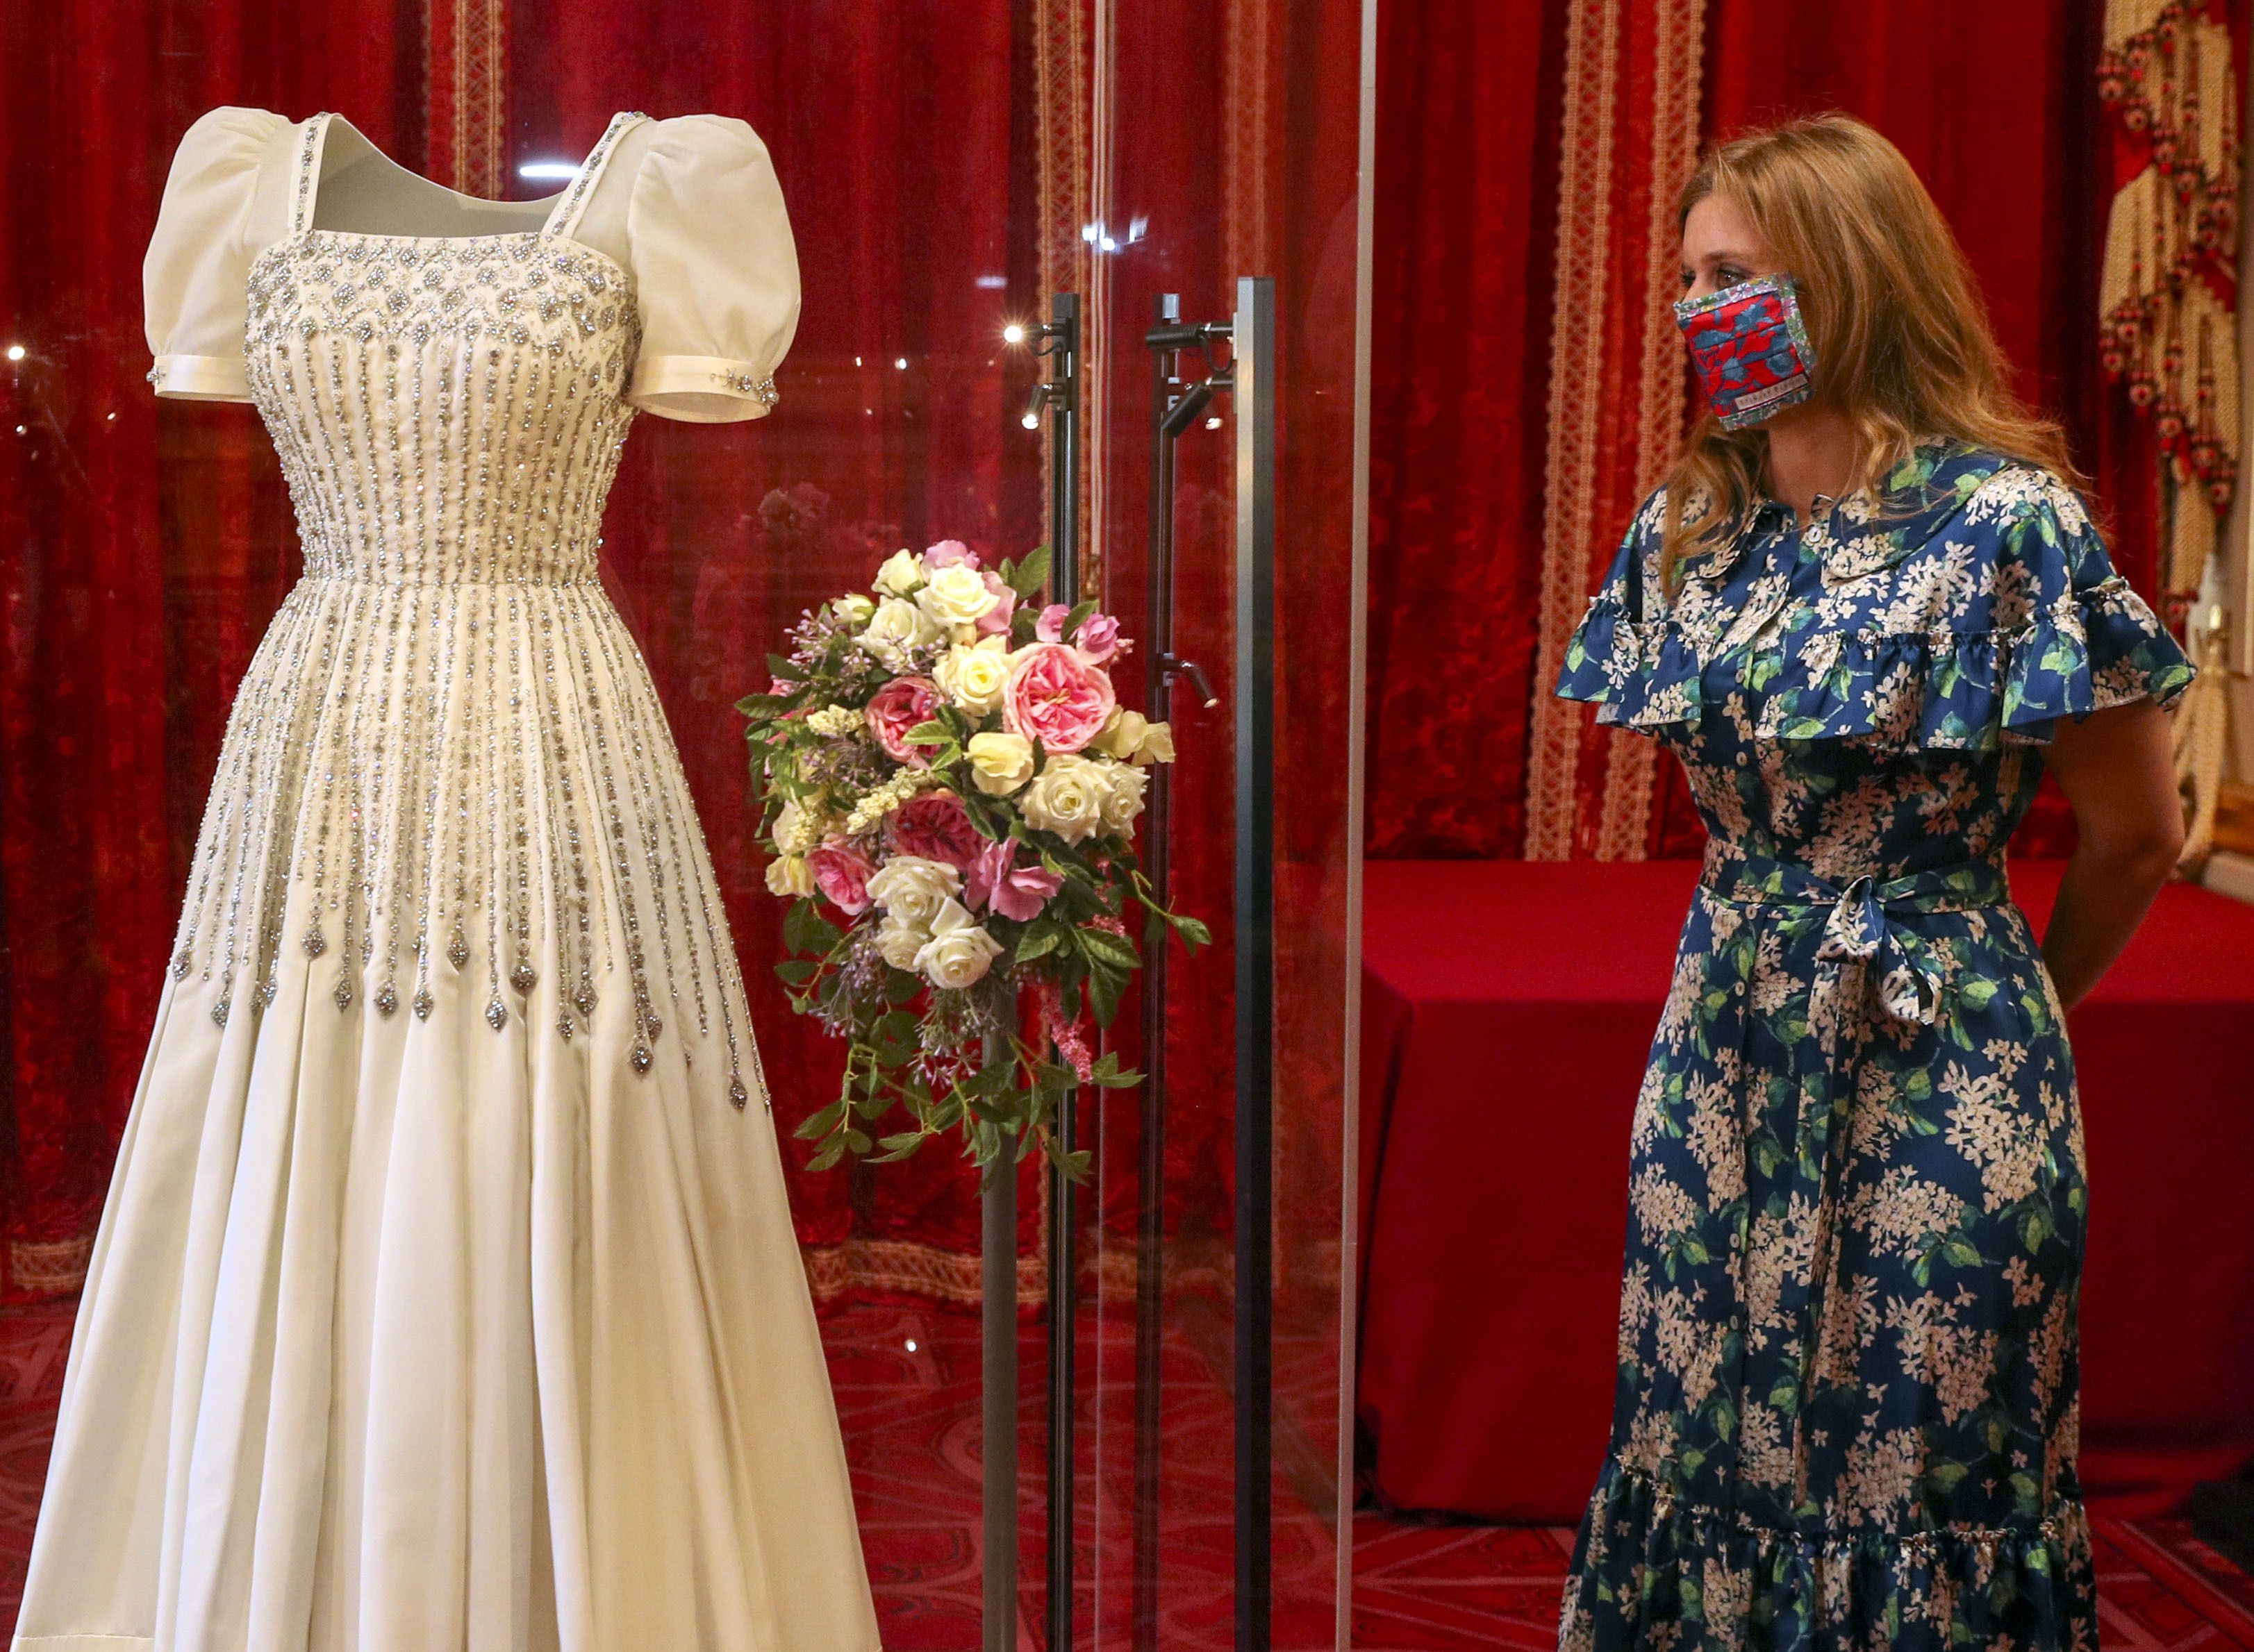 Princess Beatrice's Wedding Dress Is Now on Display at Windsor Castle